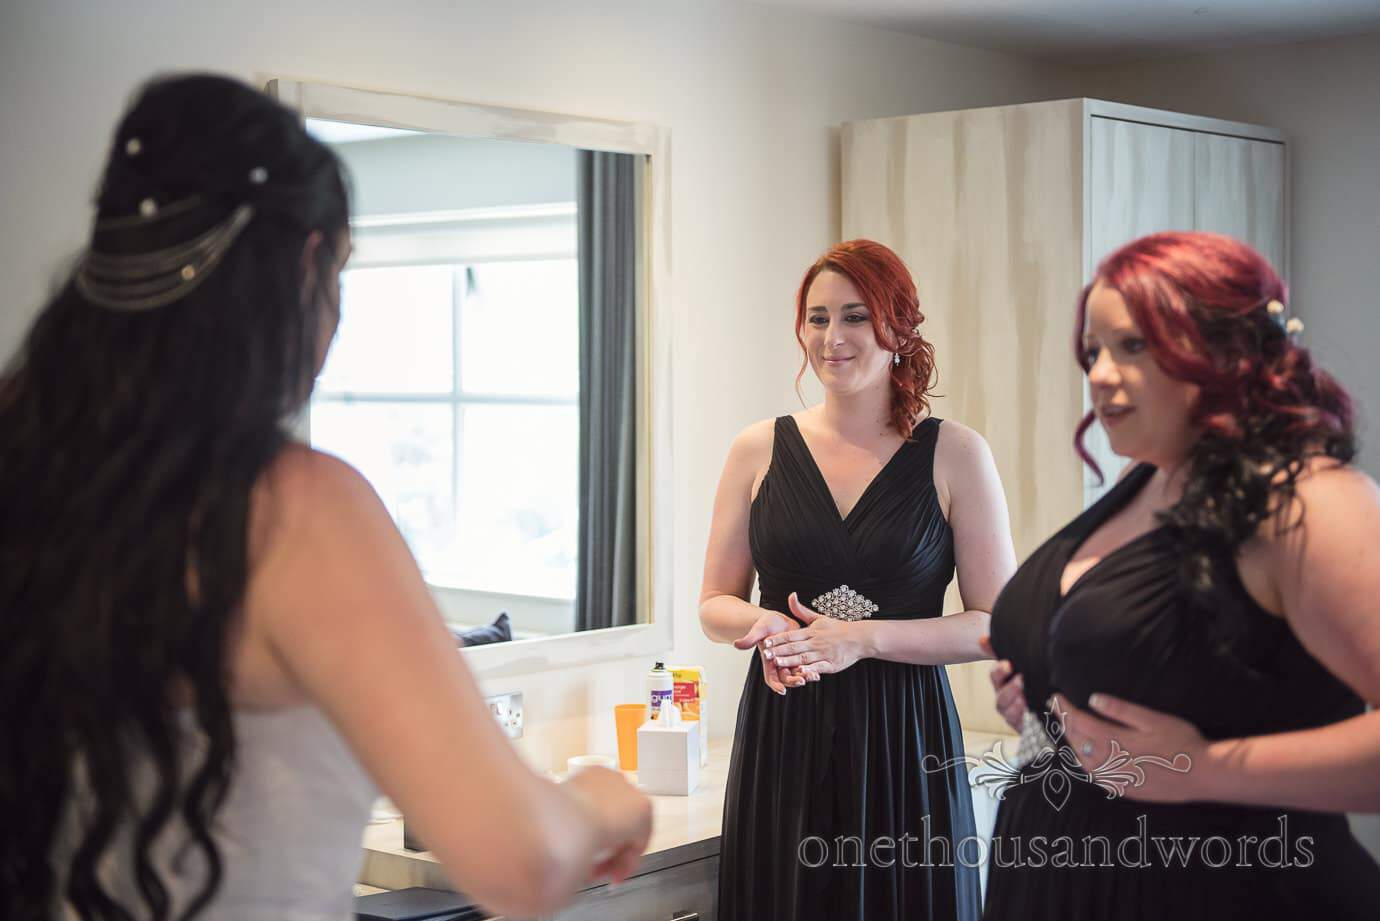 Red head bridesmaids in black bridesmaid's dresses at rock and roll wedding preparations